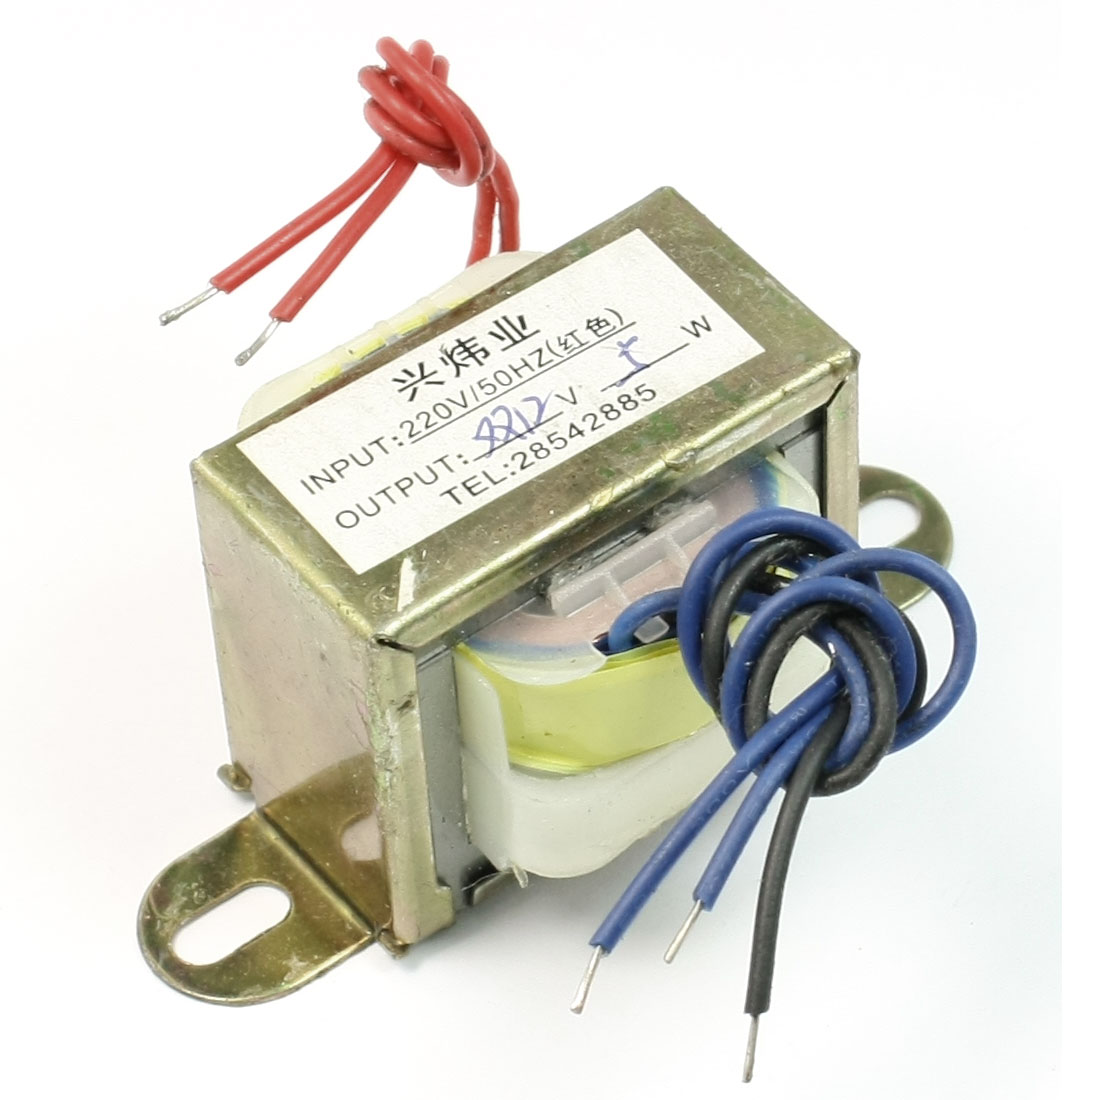 220V 50Hz Input to 12V 5W Output EI Core Double Phase Power Transformer